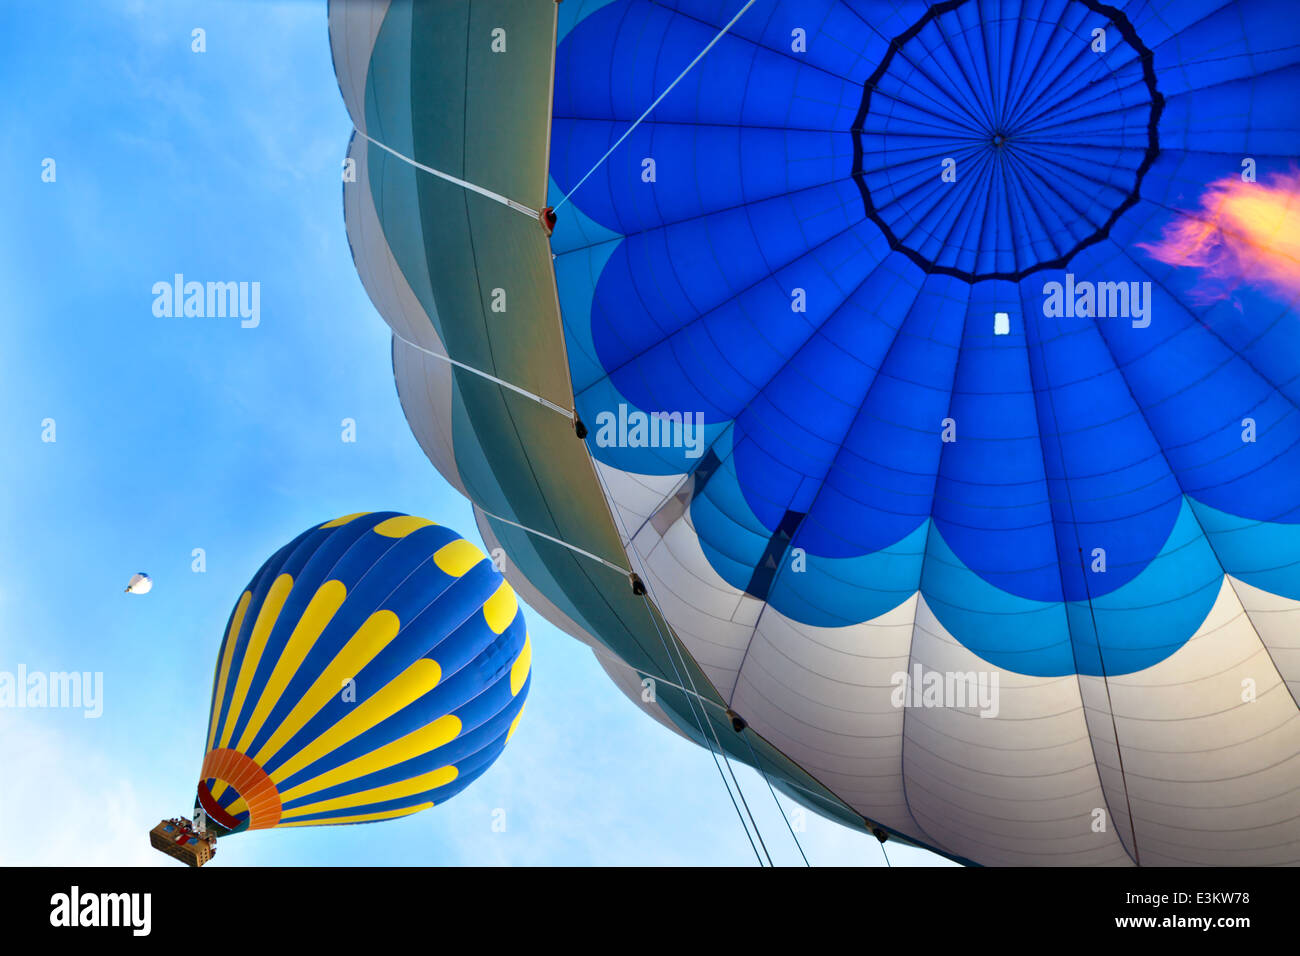 view of top of hot air balloon with burning flame - Stock Image